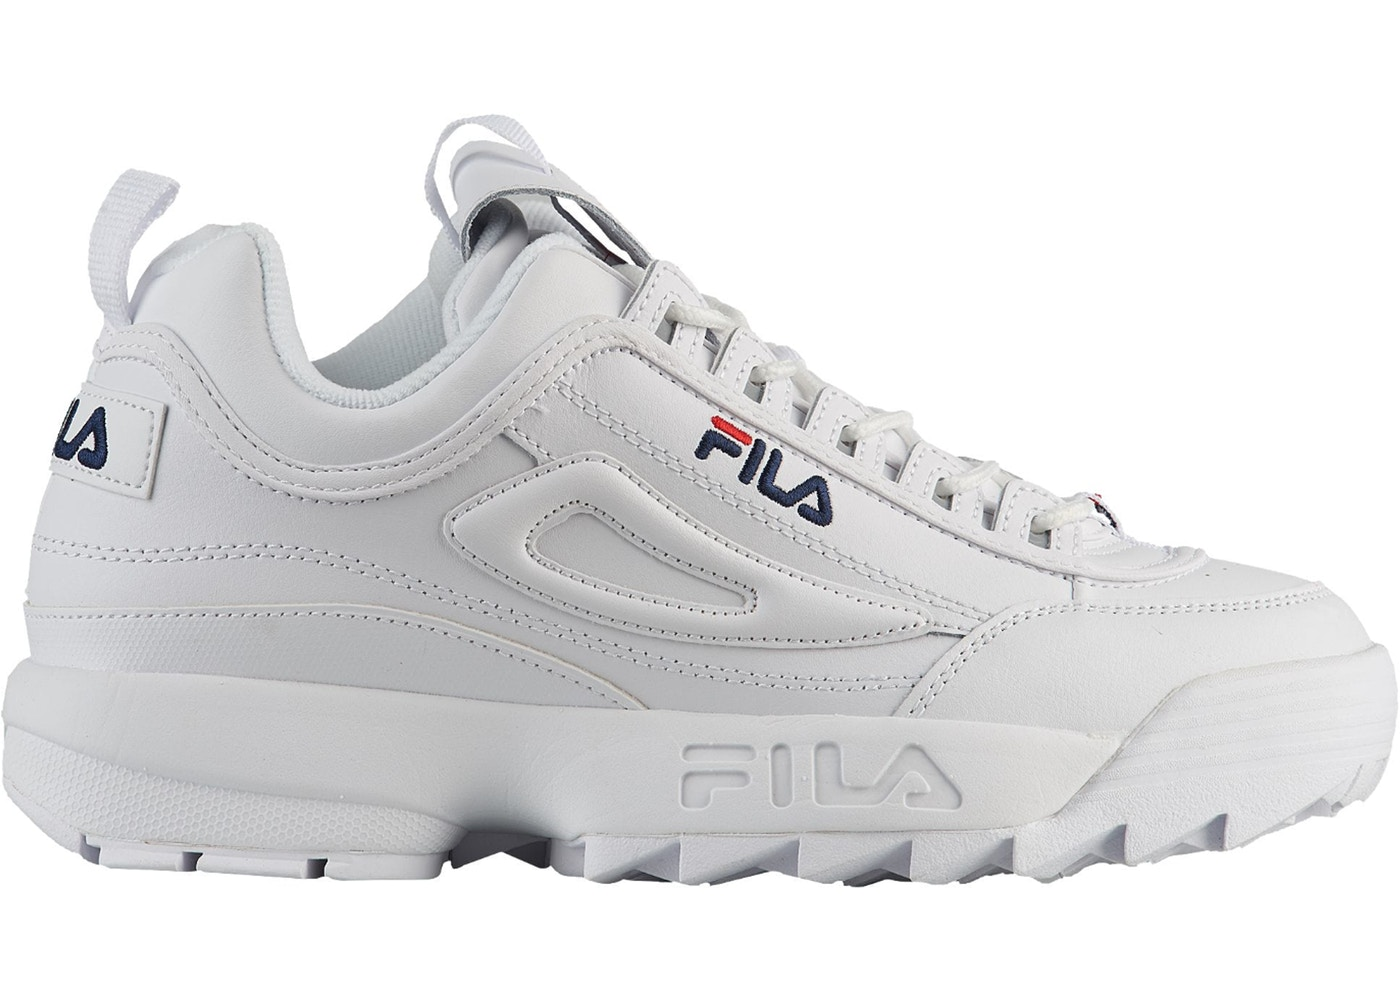 866a4db28a65 Fila Disruptor 2 White Navy Red - M0013912 FW01655-111